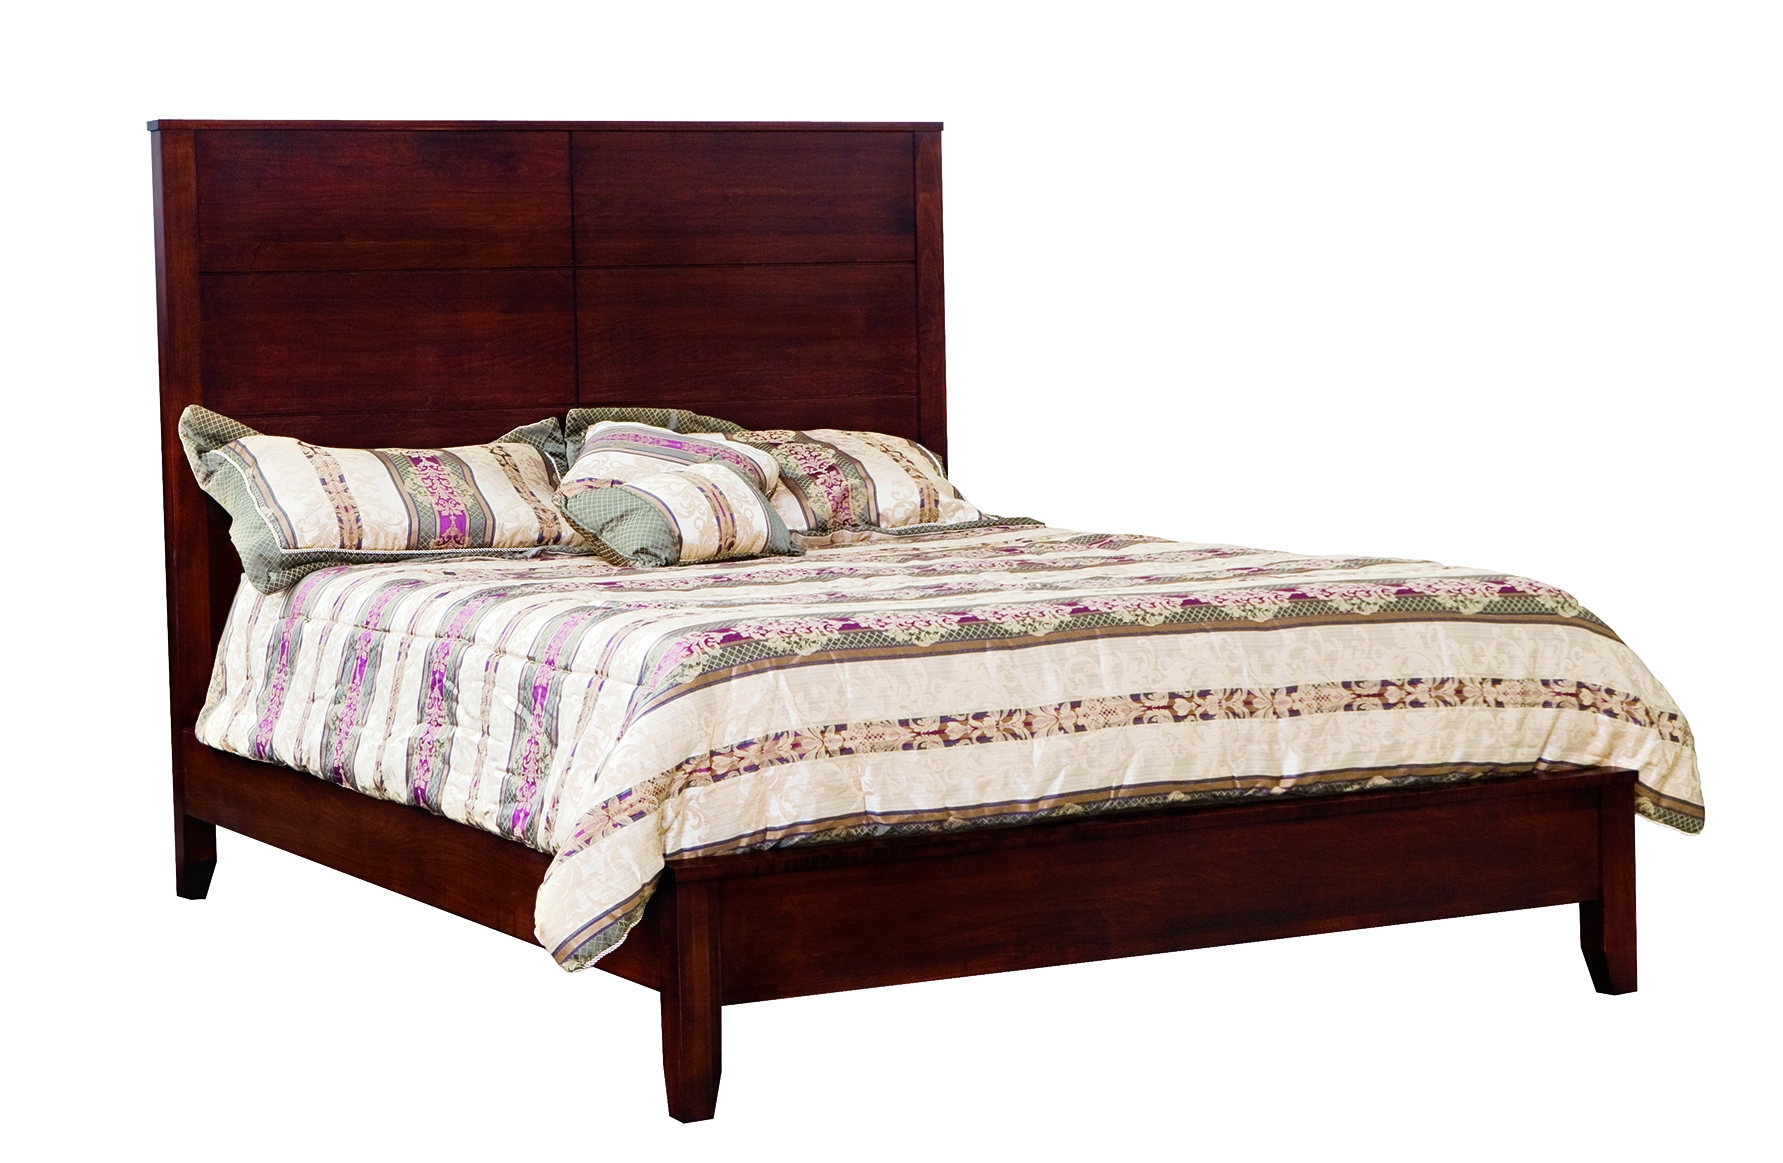 Contemporary Bed Peaceful Valley Amish Furniture